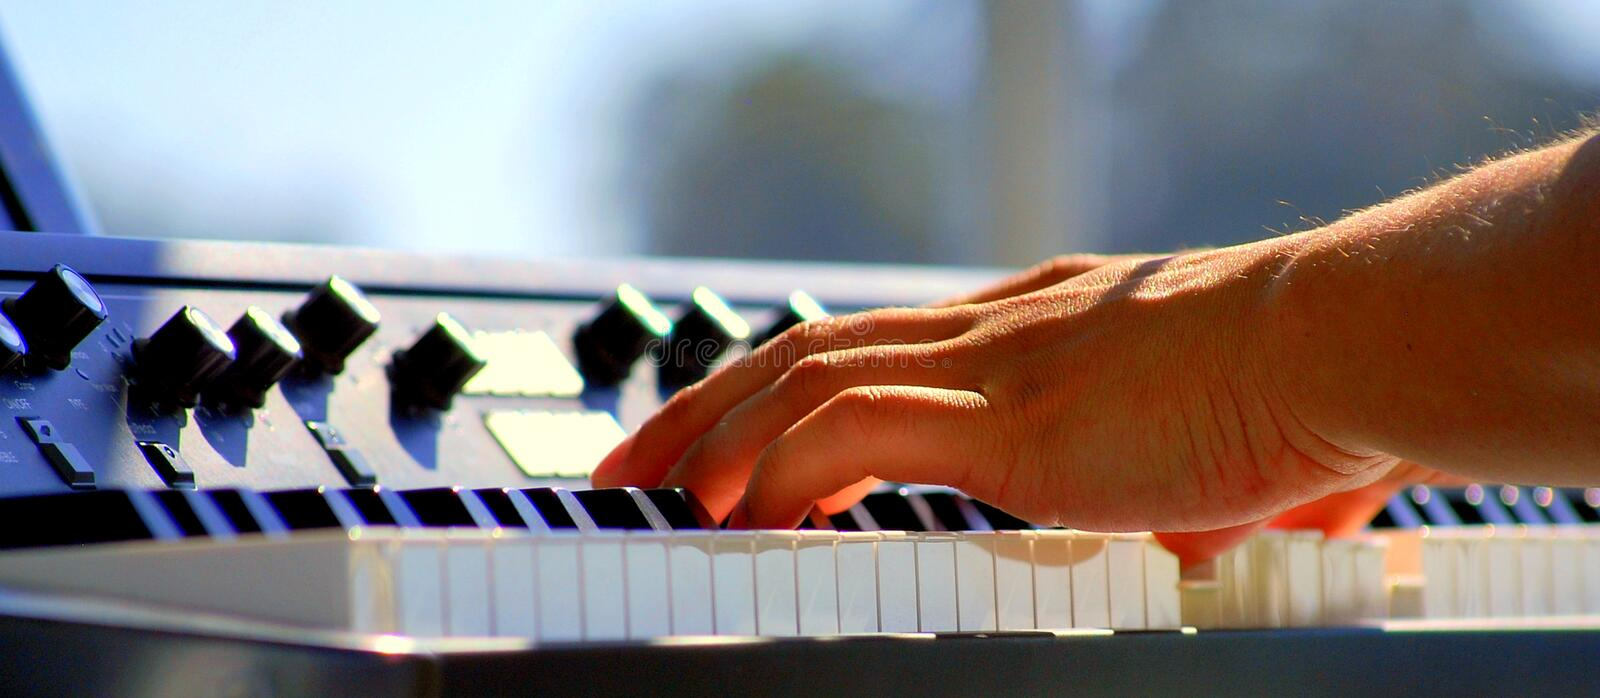 Latin jazz piano. Latin jazz piano player performing a solo in concert outdoors stock image